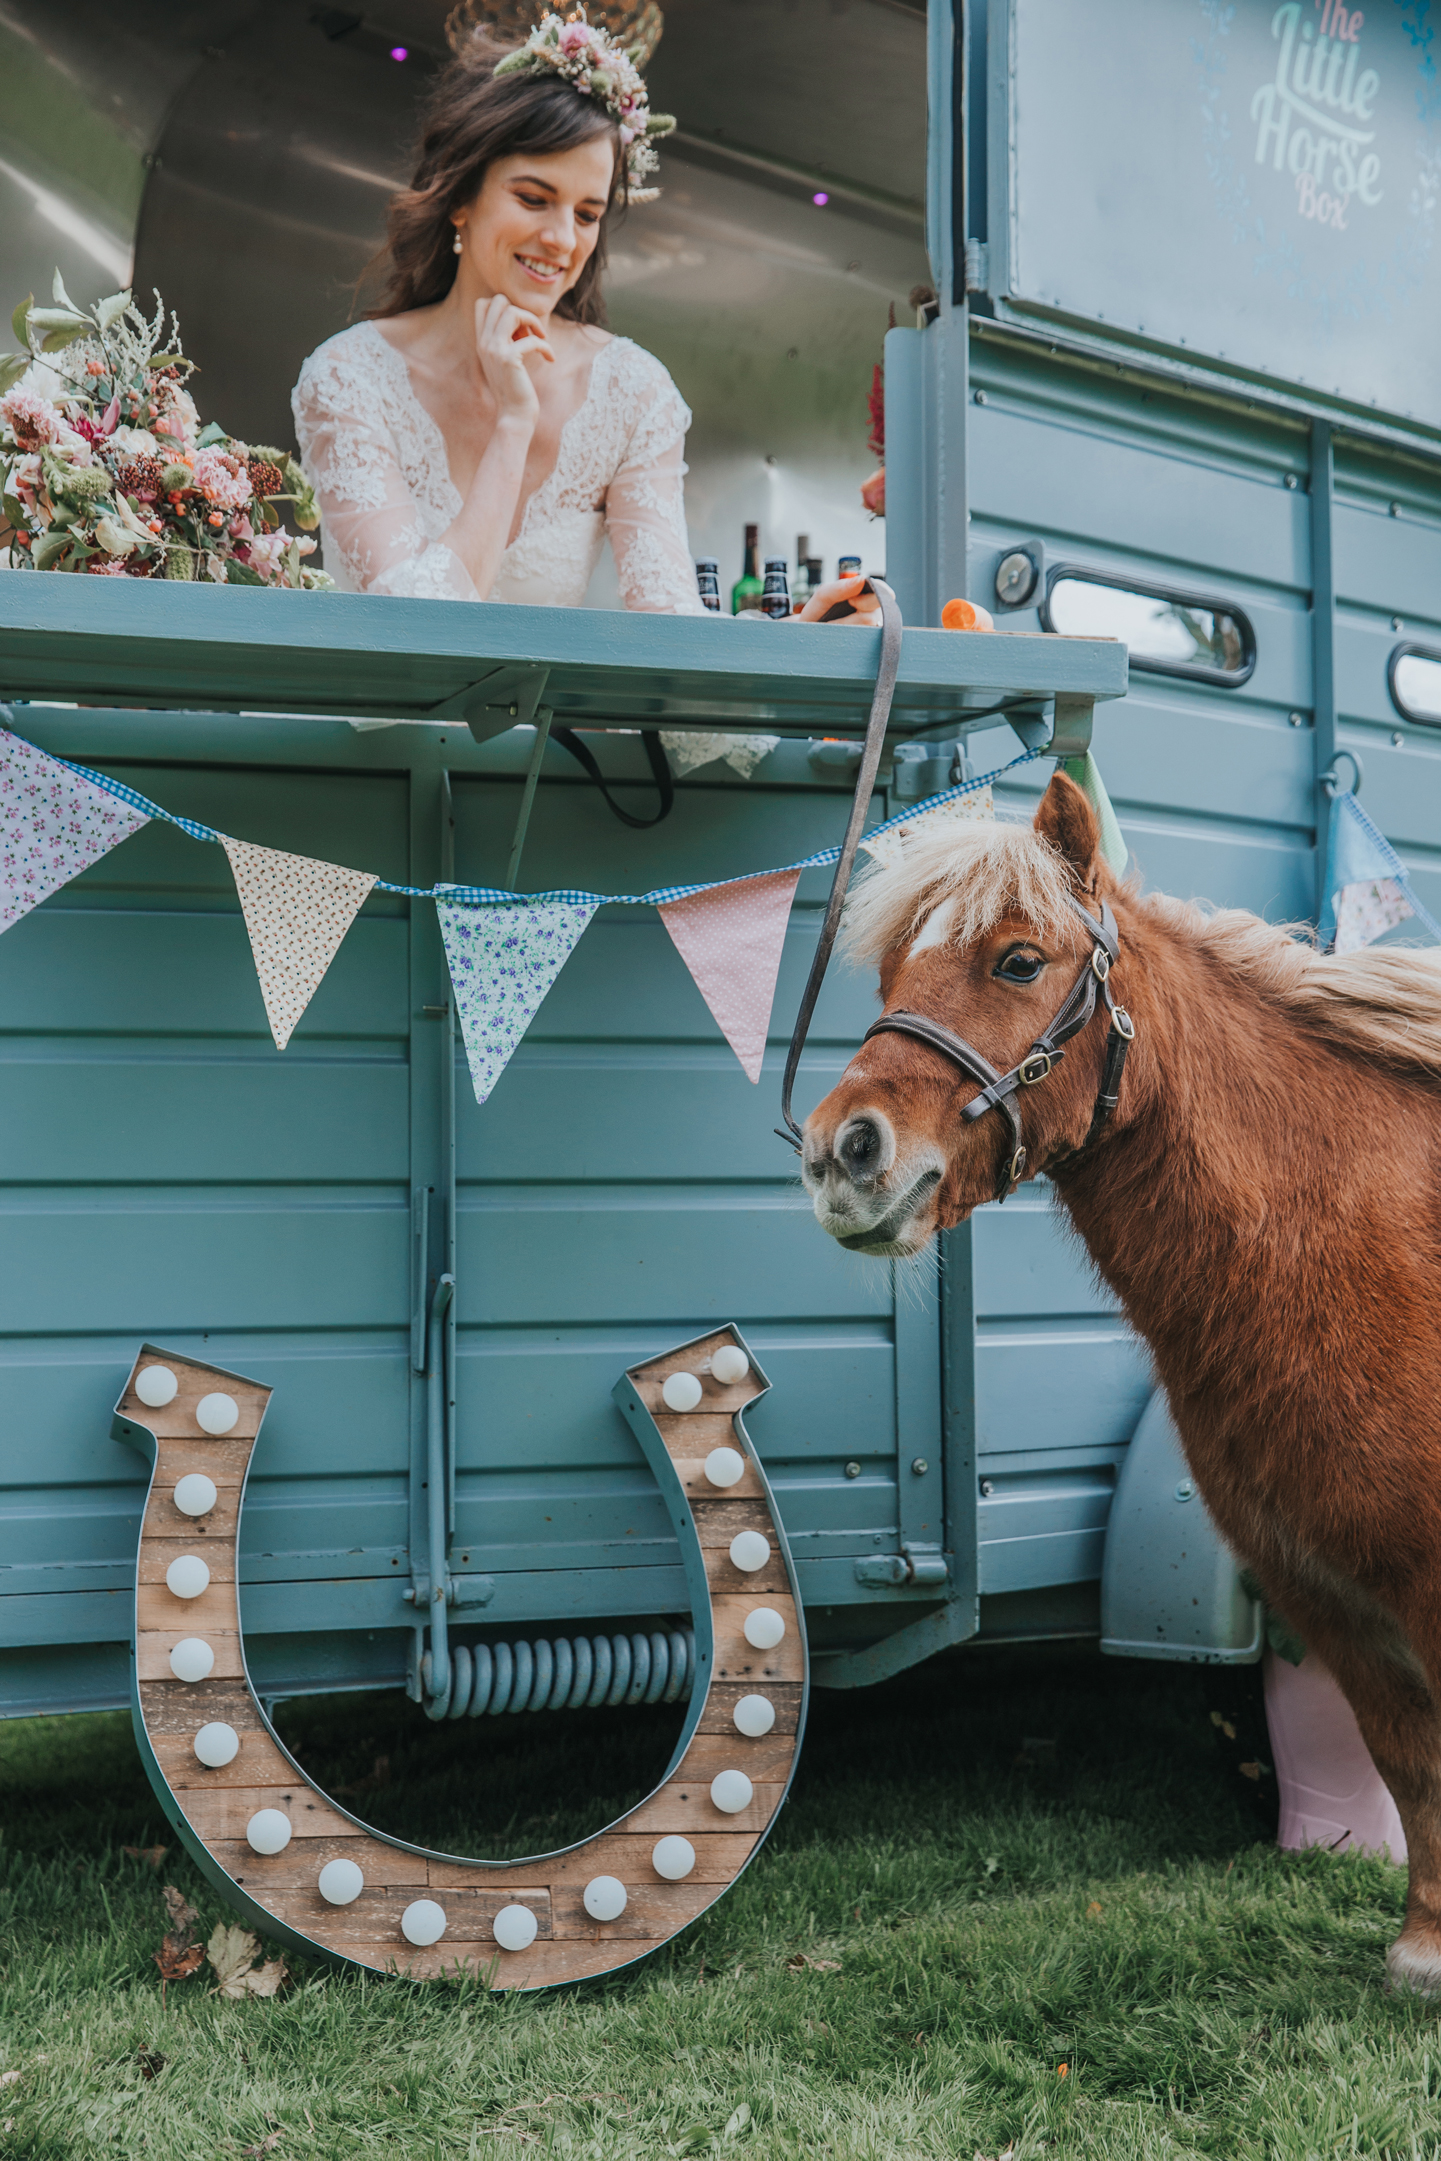 Esther_Wild_Little_Horse_Box_Norfolk_Wedding_IMG_3017.jpg